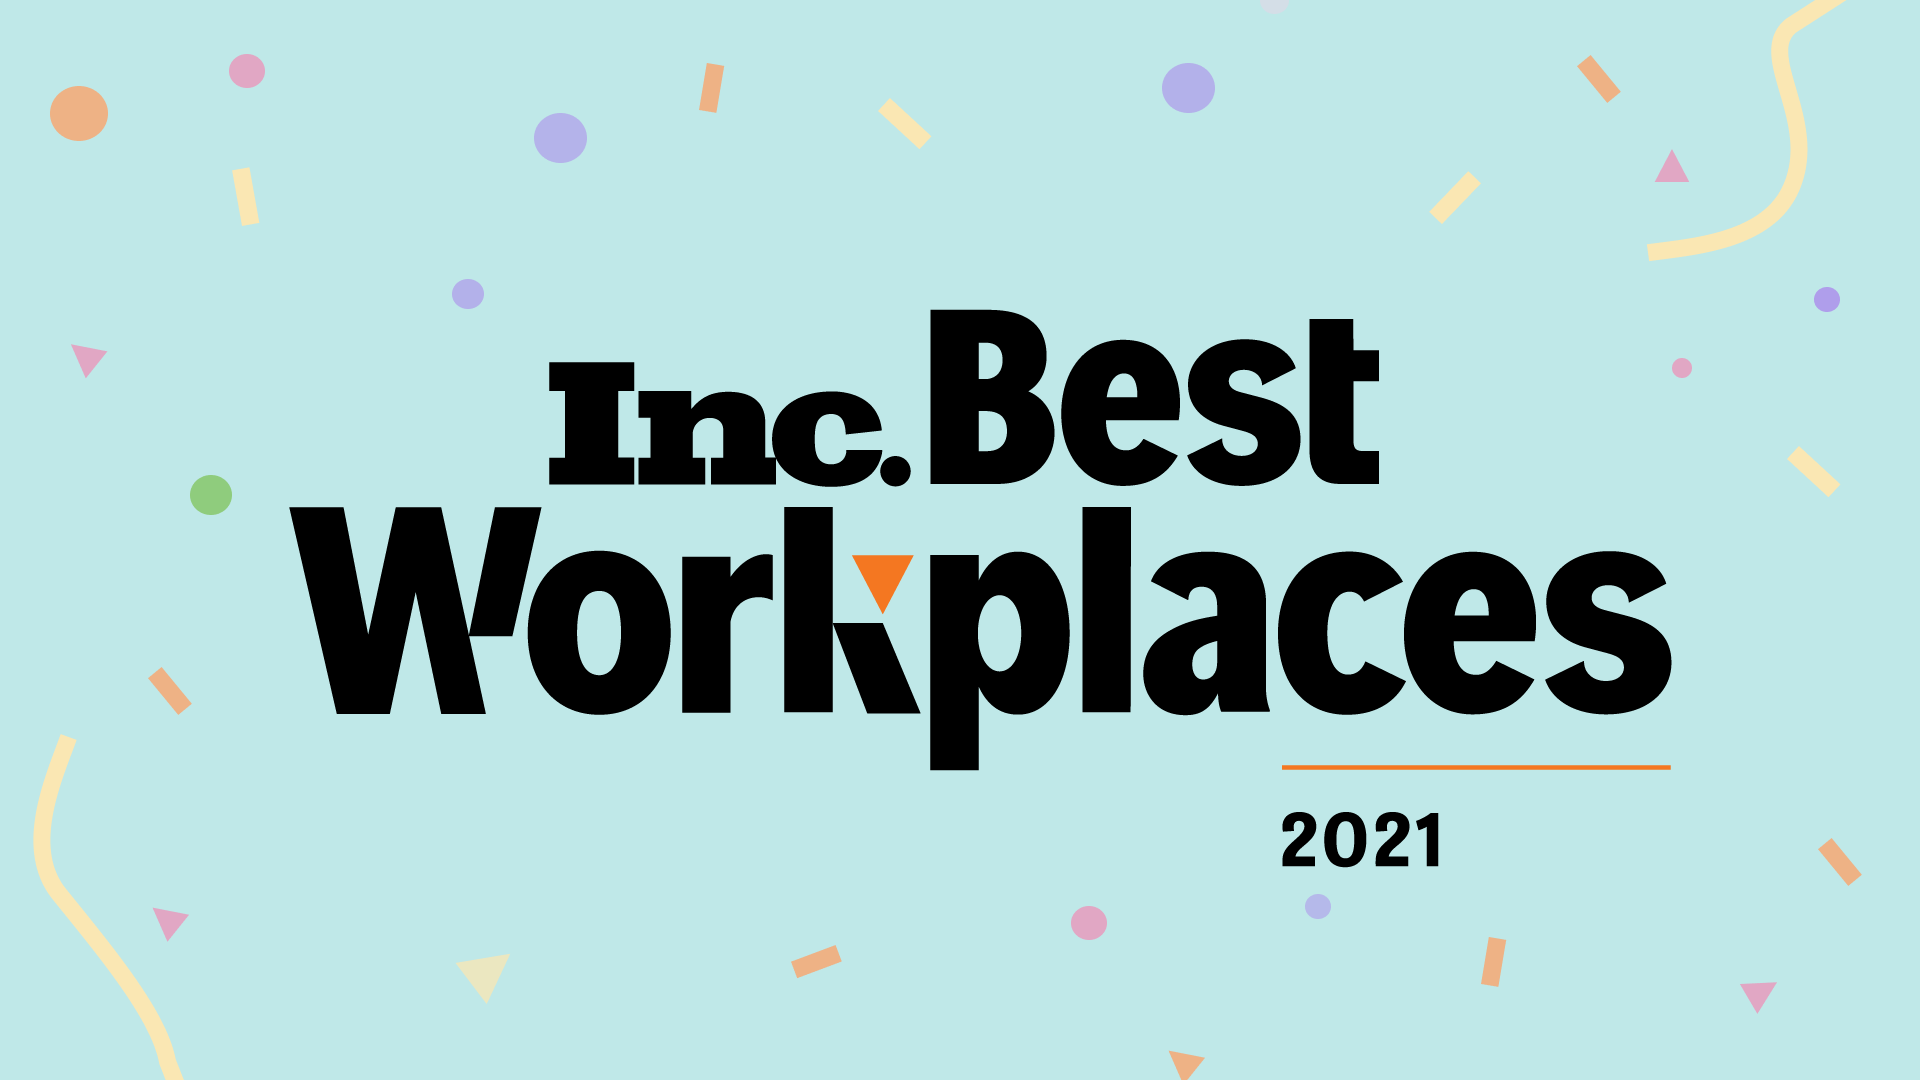 [text] Inc. Best Workplaces 2021 on yellow background with confetti